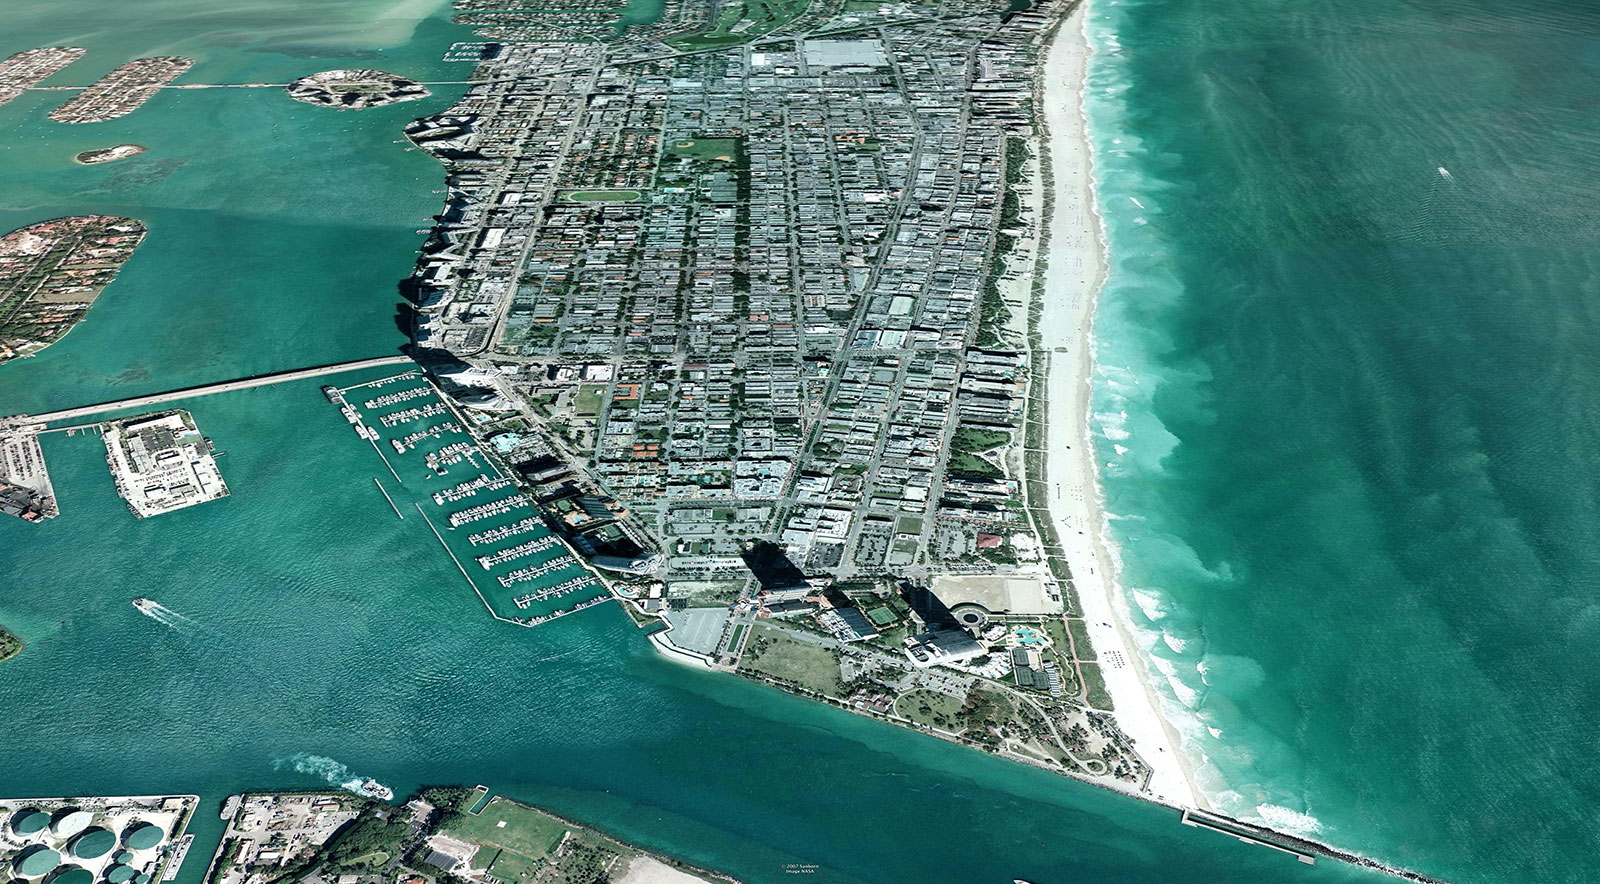 """Image showing the """"existing"""" conditions on the coastline of beaches in Miami, Florida. Image Credit: ©2007 Google, Inc."""